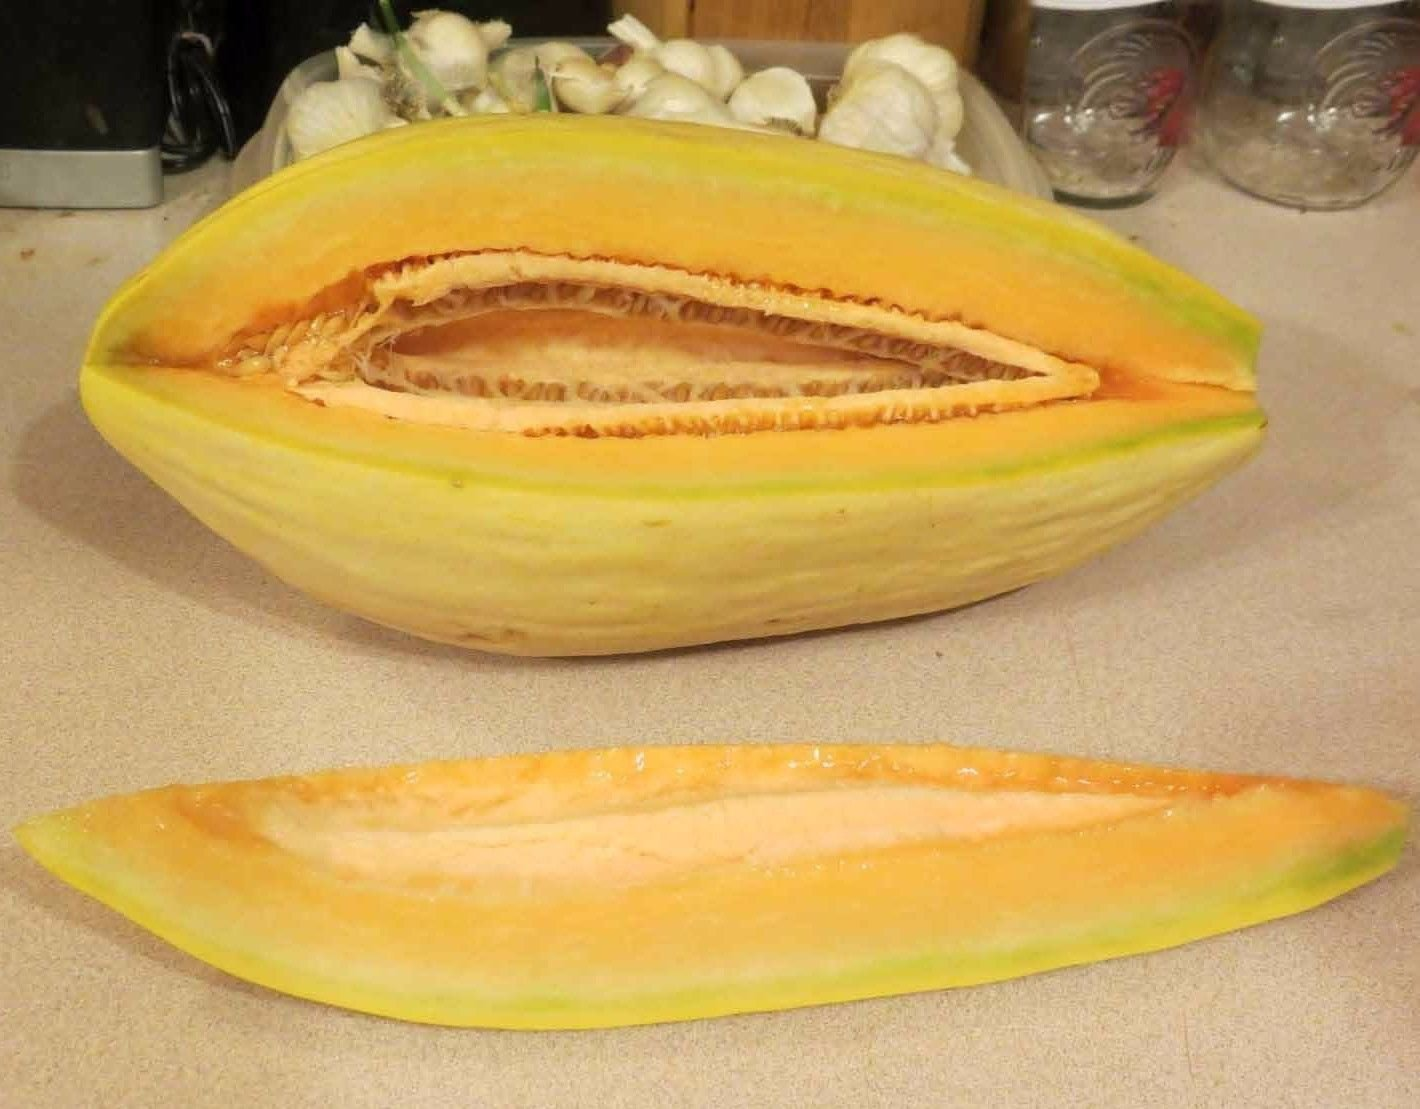 Banana Melon 100 seeds * sweet * easy grow * *SHIPPING FROM US* CombSH H25